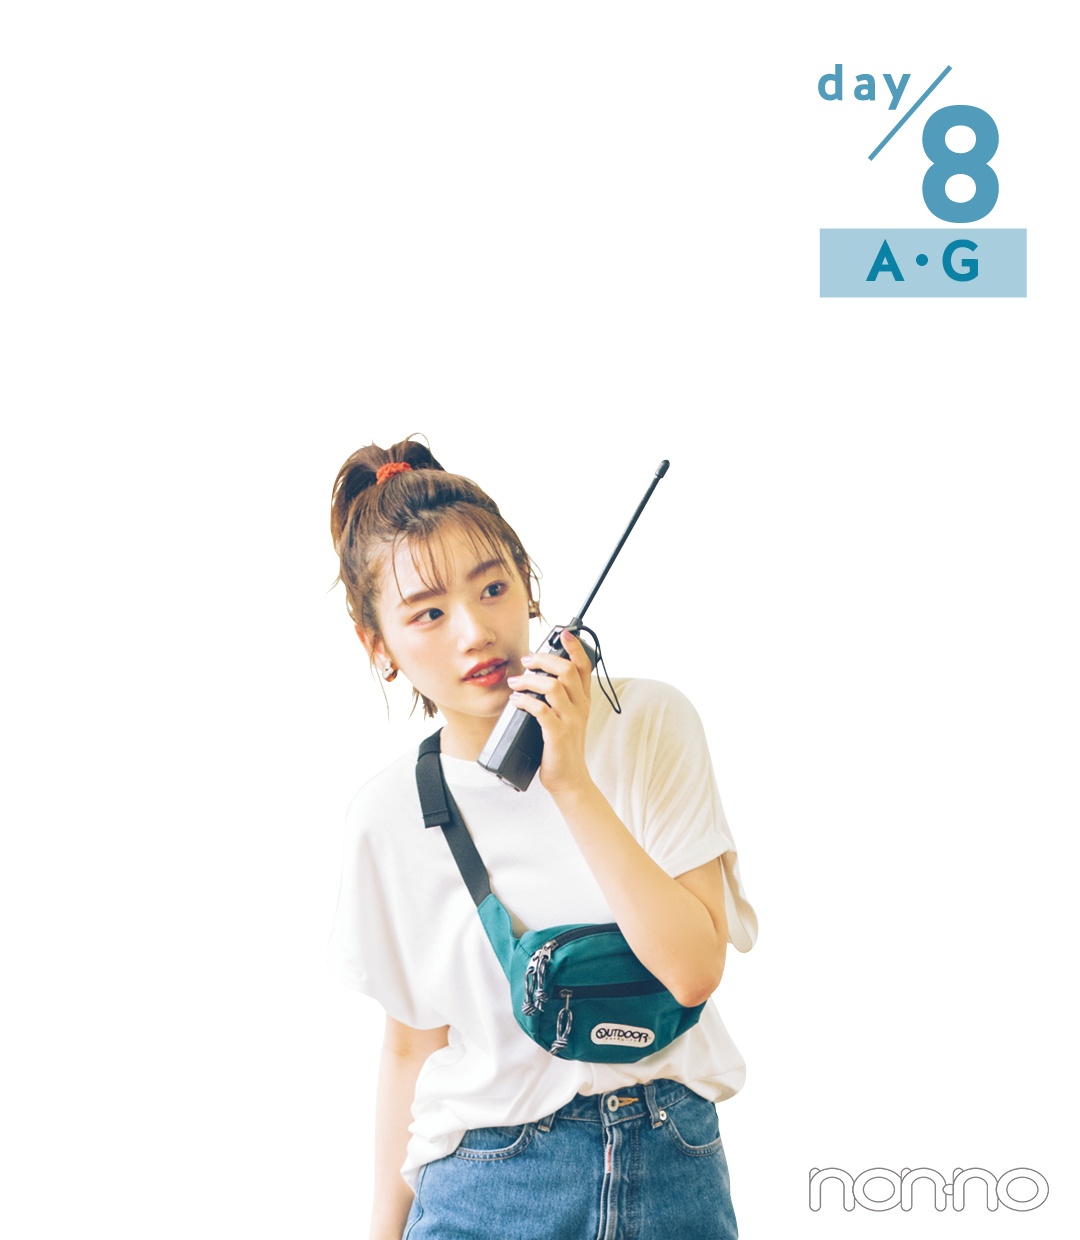 day/3 A・G